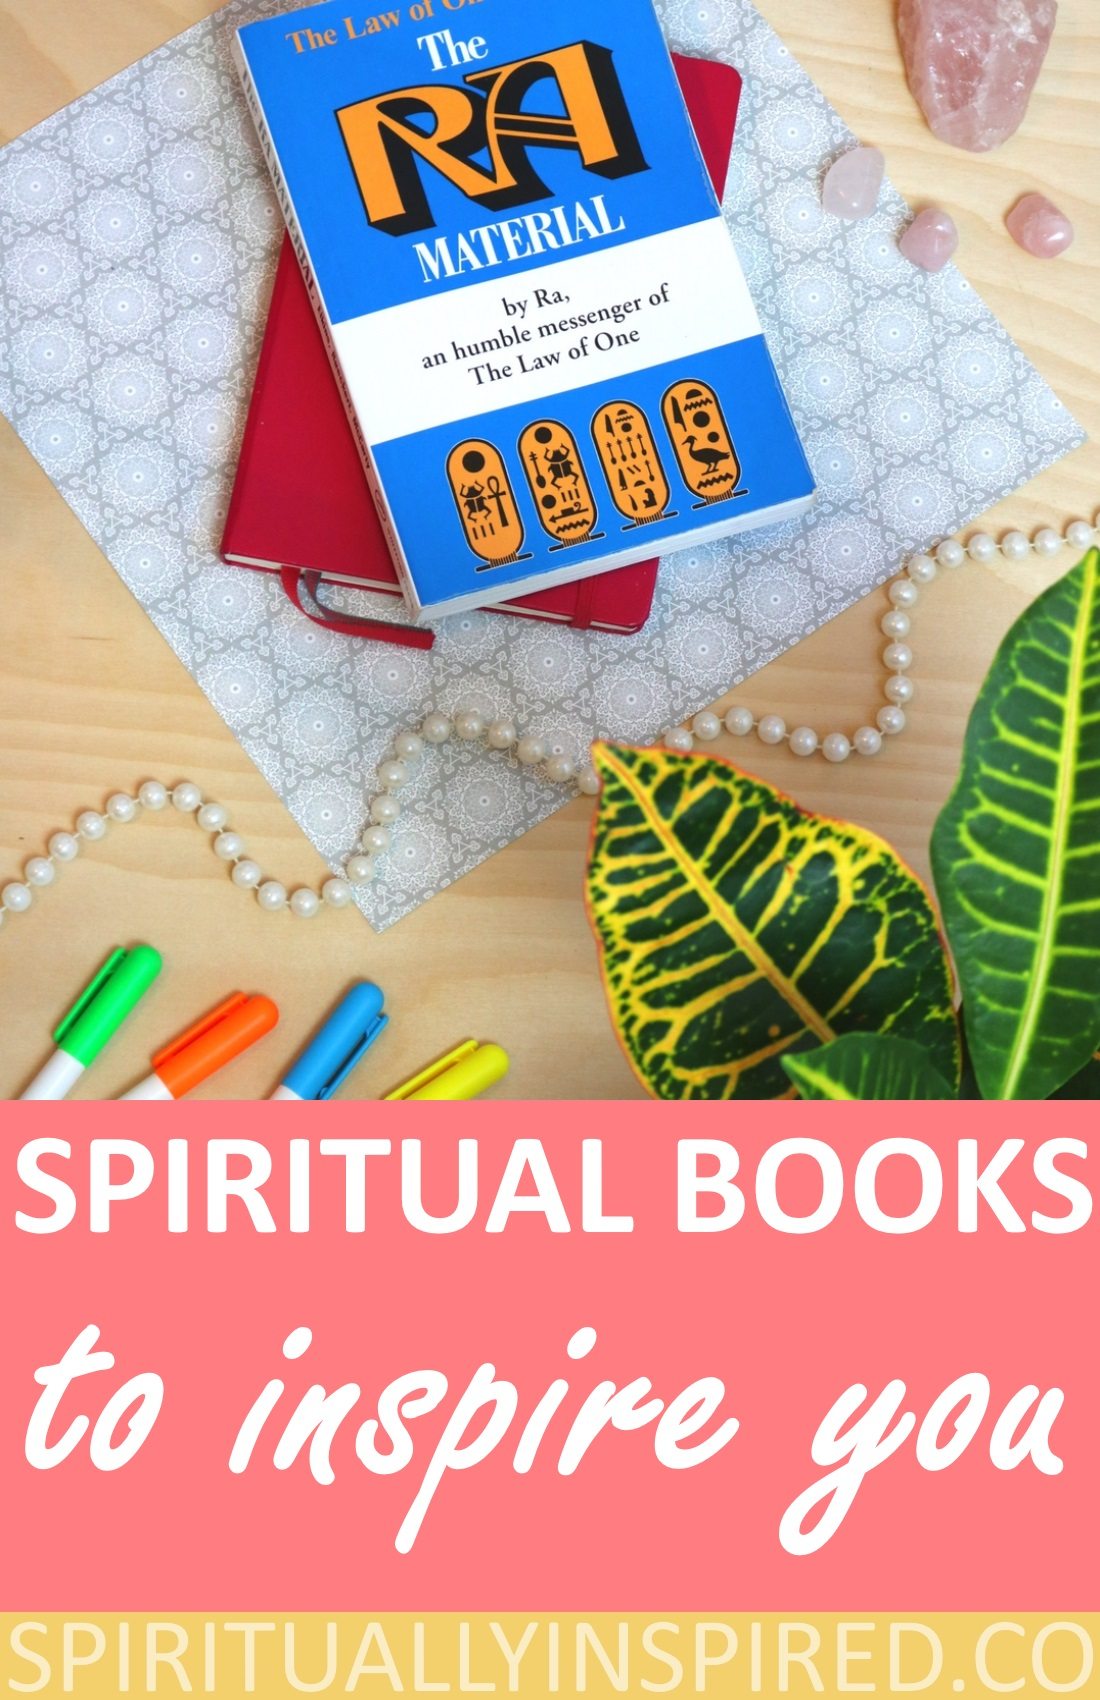 Today, I'm sharing some spiritual books that have greatly impacted my life. Hopefully you will feel inspired to pick up some spiritual books this week!